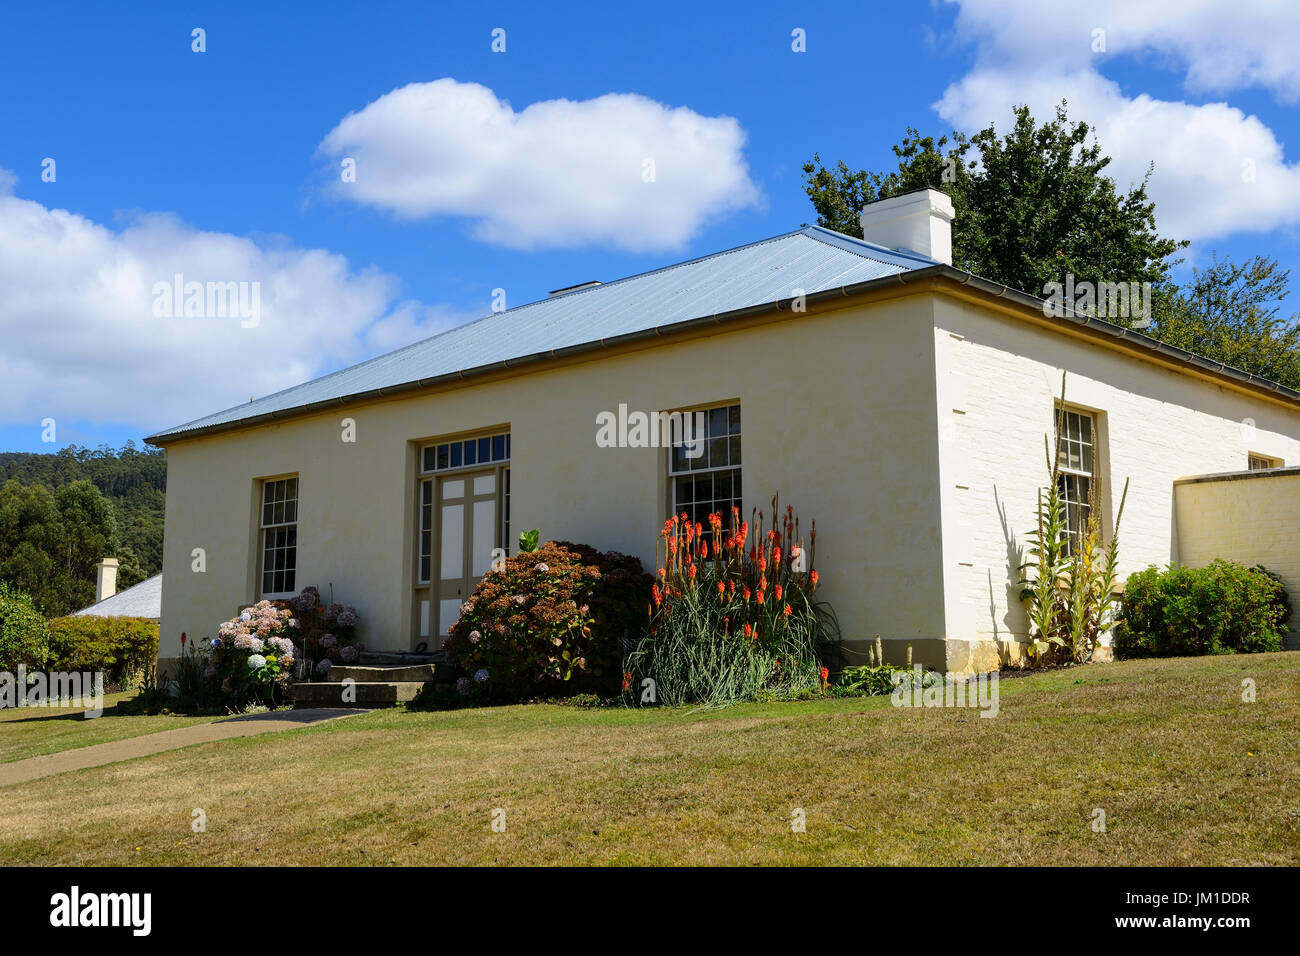 Accountant's House at Port Arthur historic site (former convict settlement) on the Tasman Peninsula in Tasmania, Australia - Stock Image